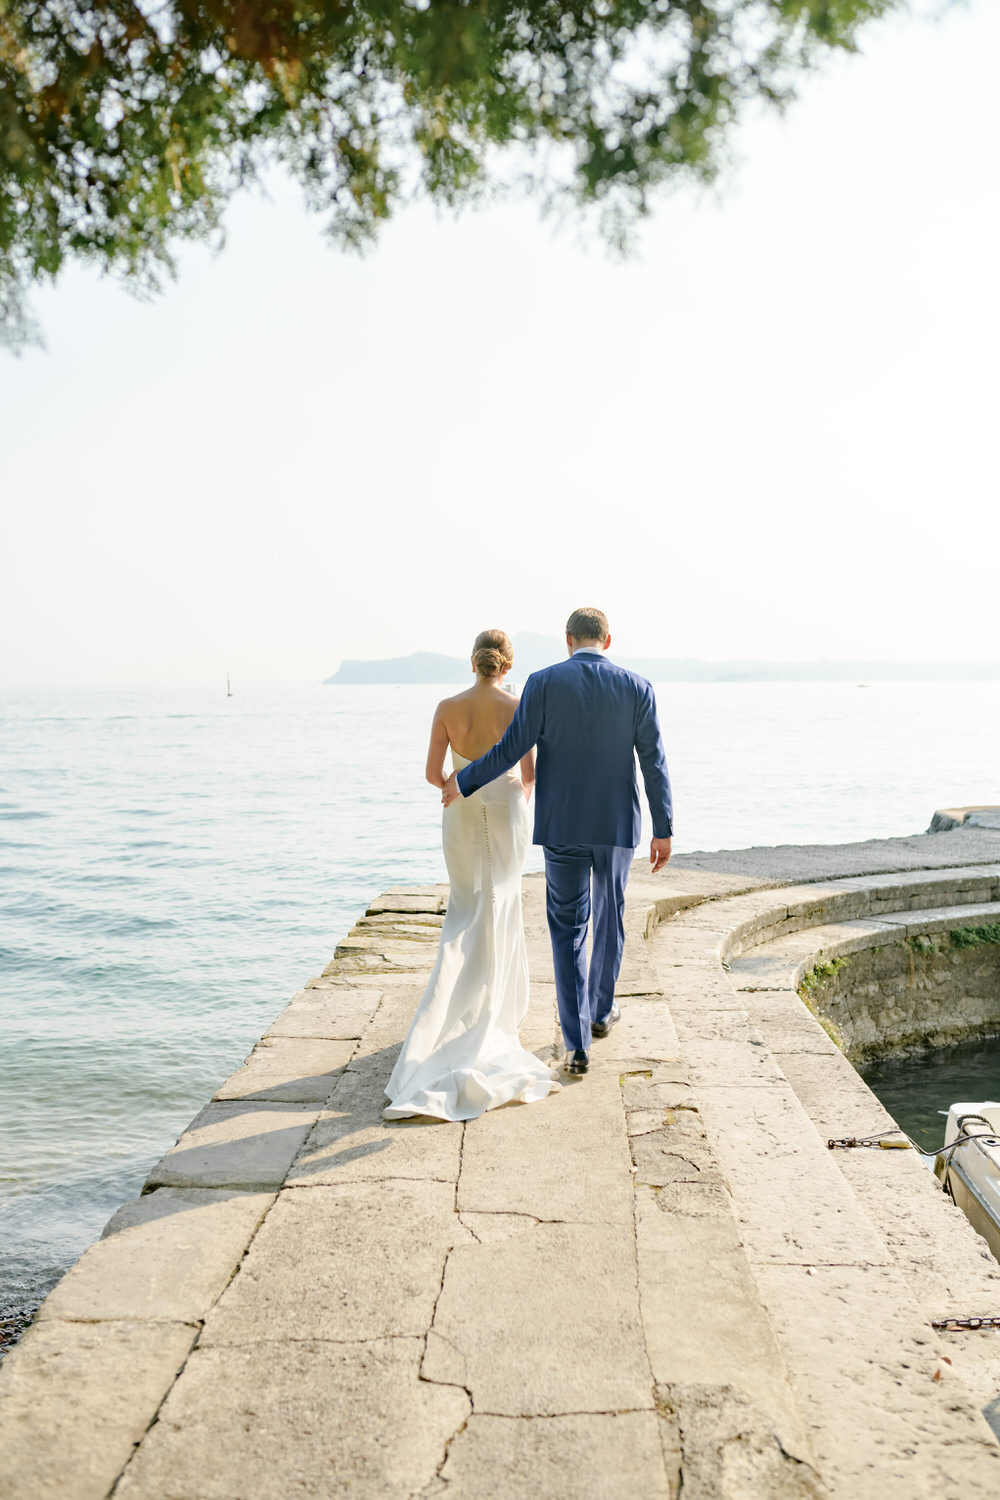 Garda Lake Wedding Photographer - S&B - ©bottega53-53.JPG